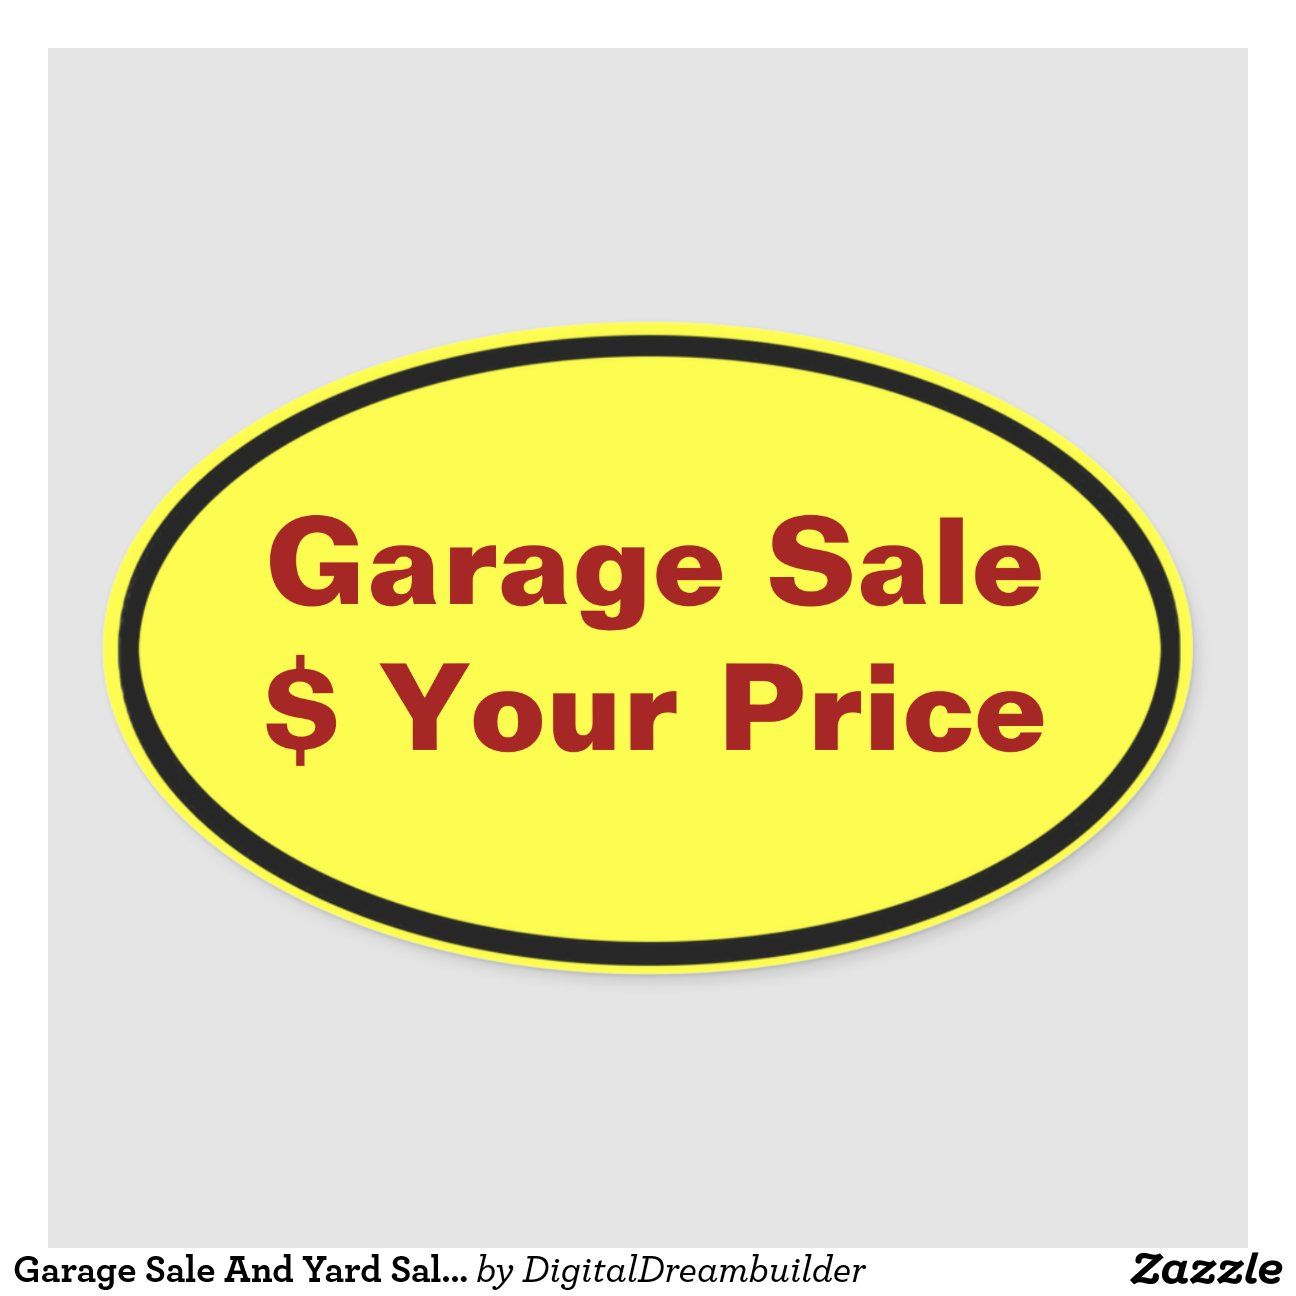 Garage Sale Price Stickers Garage Yard Sale Price Stickers Labels 50 Percent Off